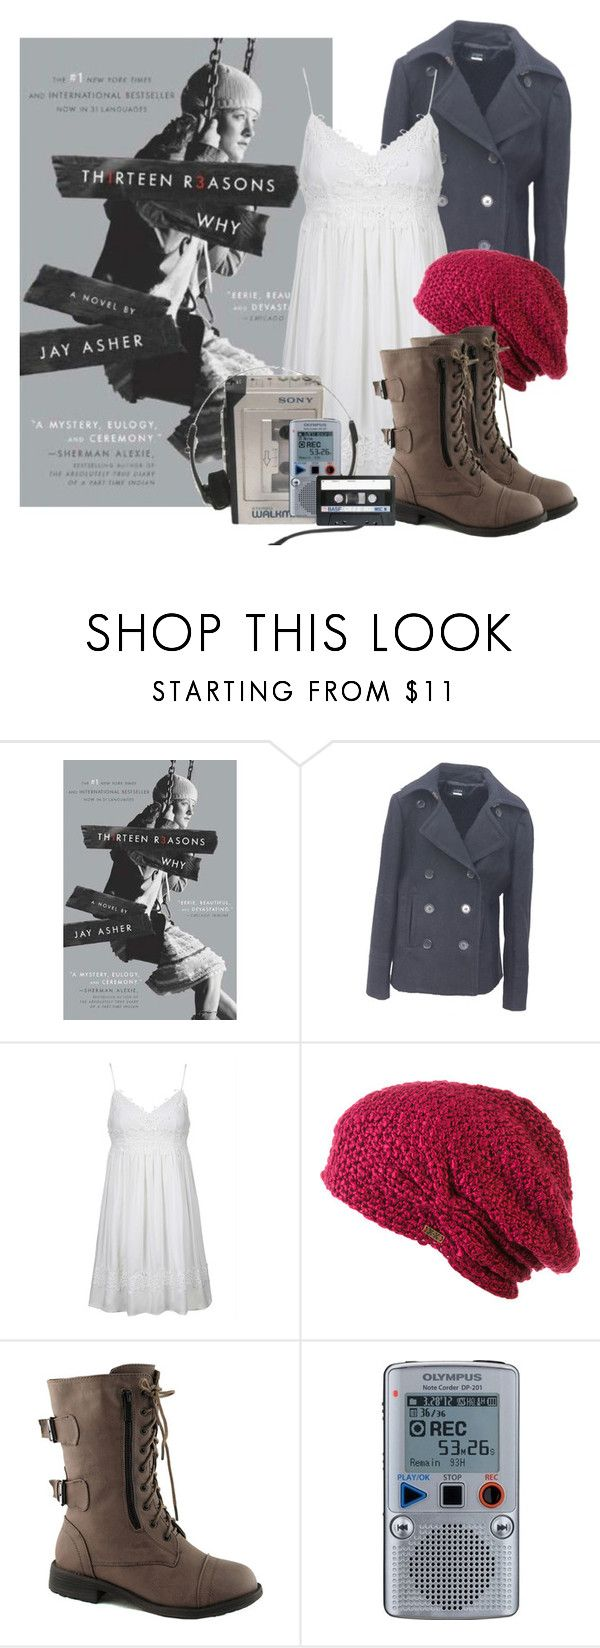 Nike jacket from 13 reasons why - Thirteen Reasons Why Jay Asher By Macmgryffindor On Polyvore Featuring Topshop J Crew